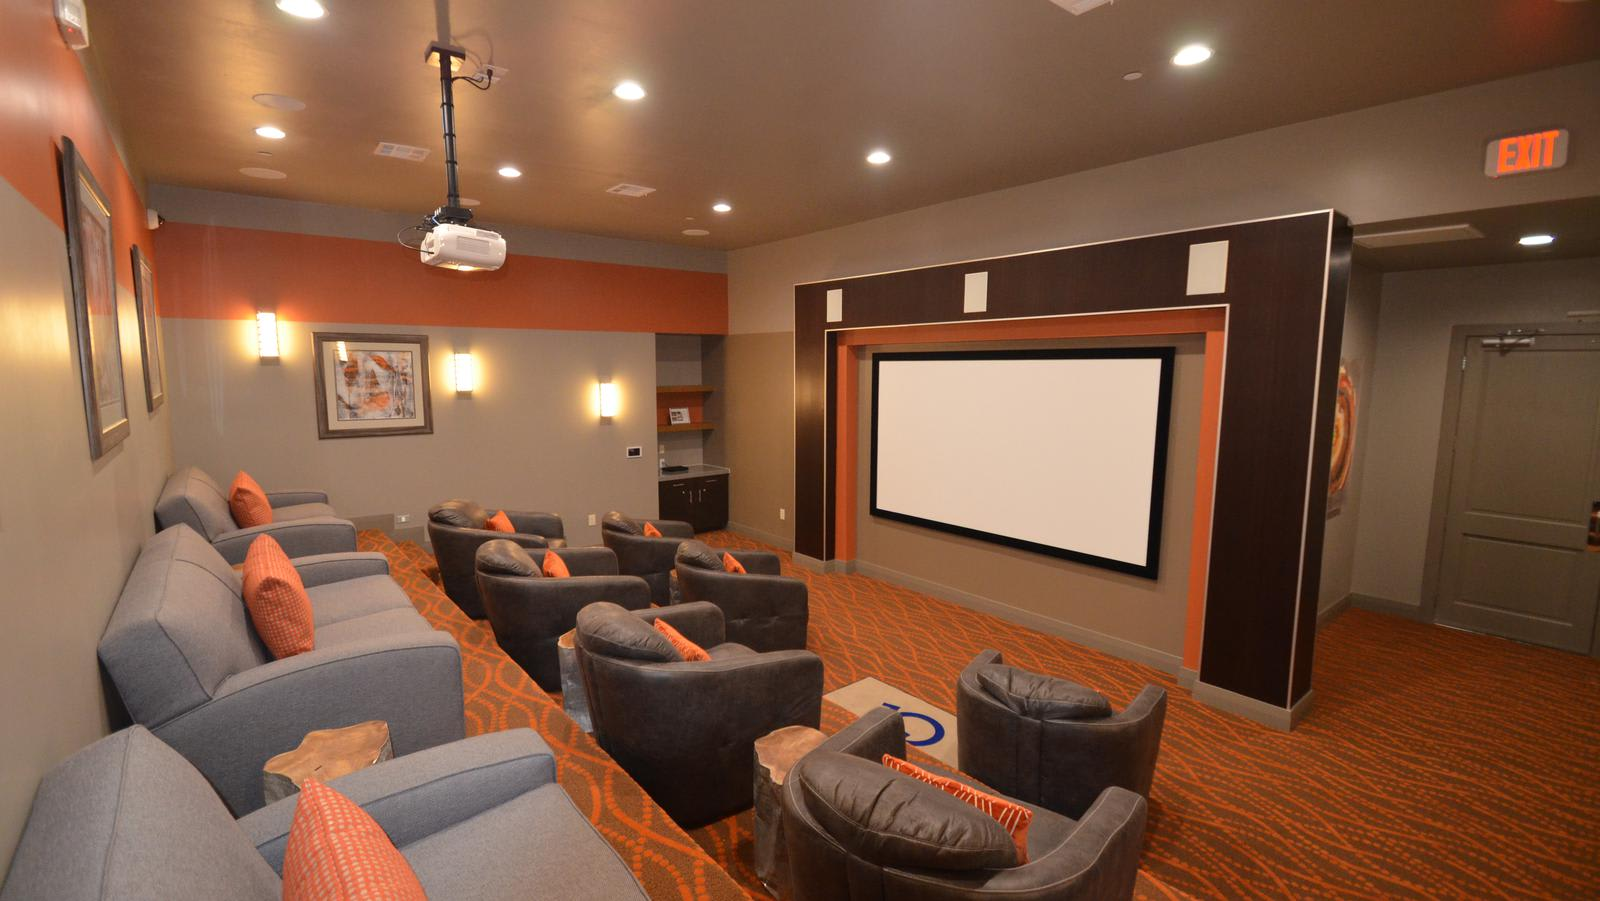 home cinema at ParkLane Cypress in Cypress, TX